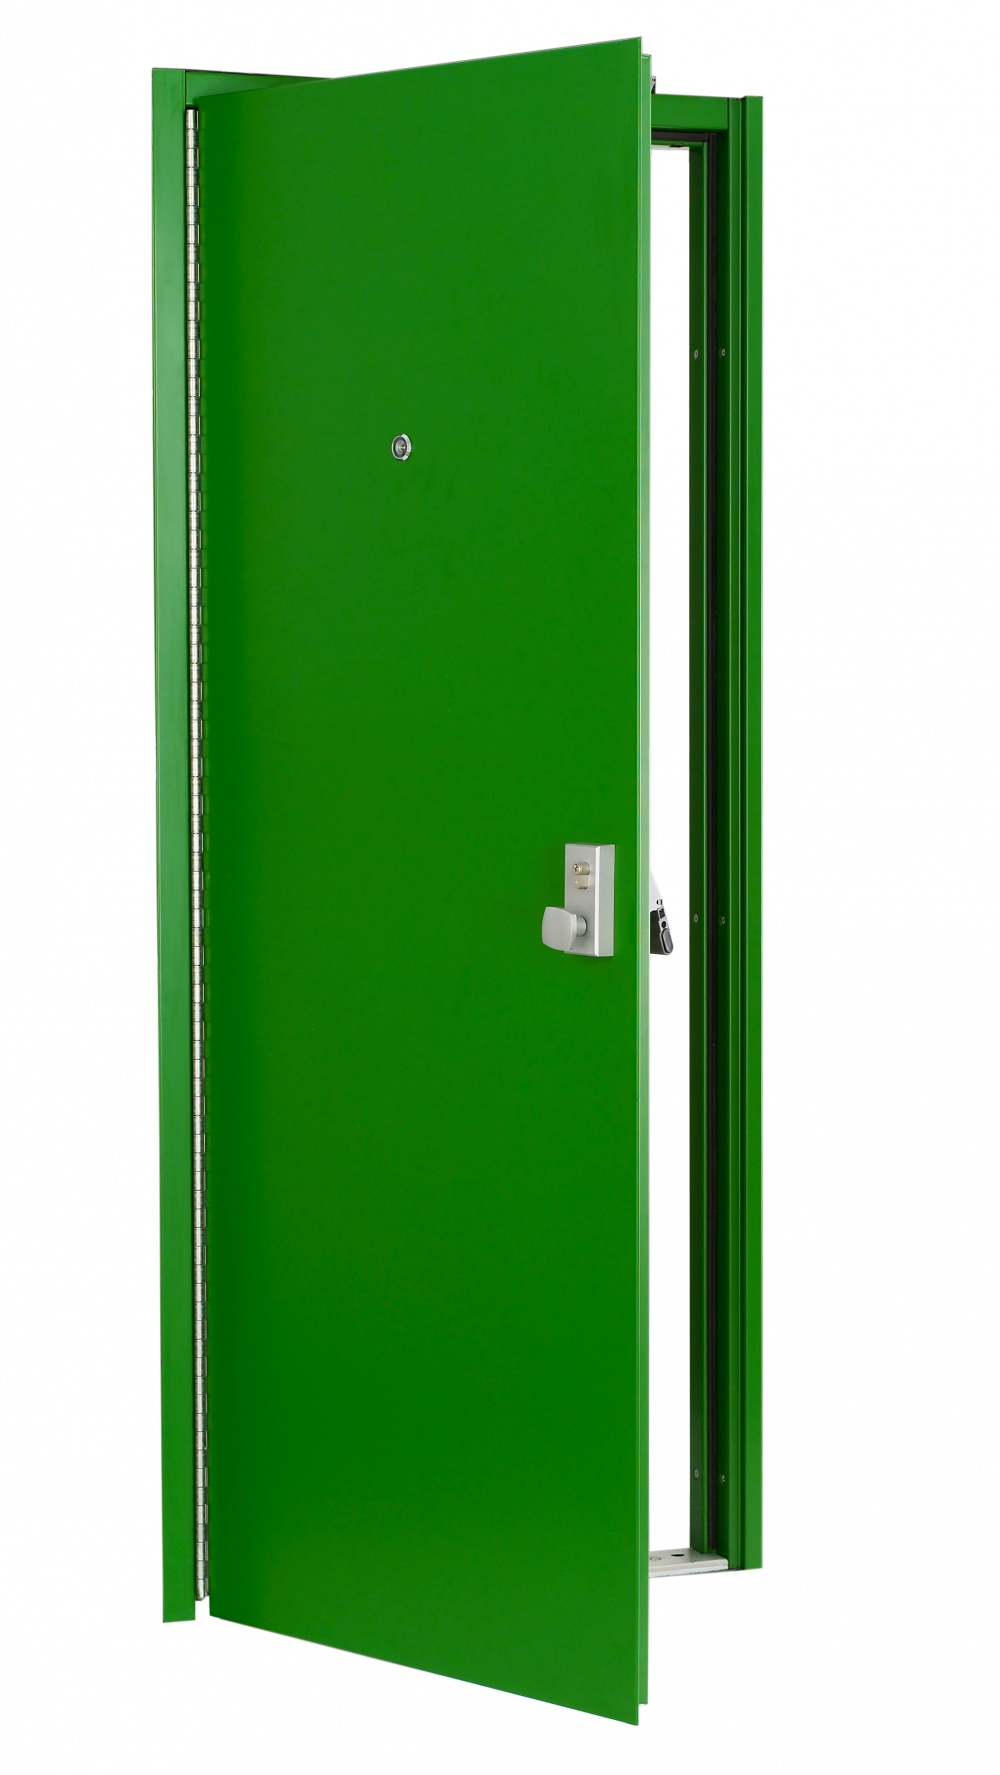 G20 steel door with optional continuous hinge, panic bar, outside operator and door viewer. Other options are available